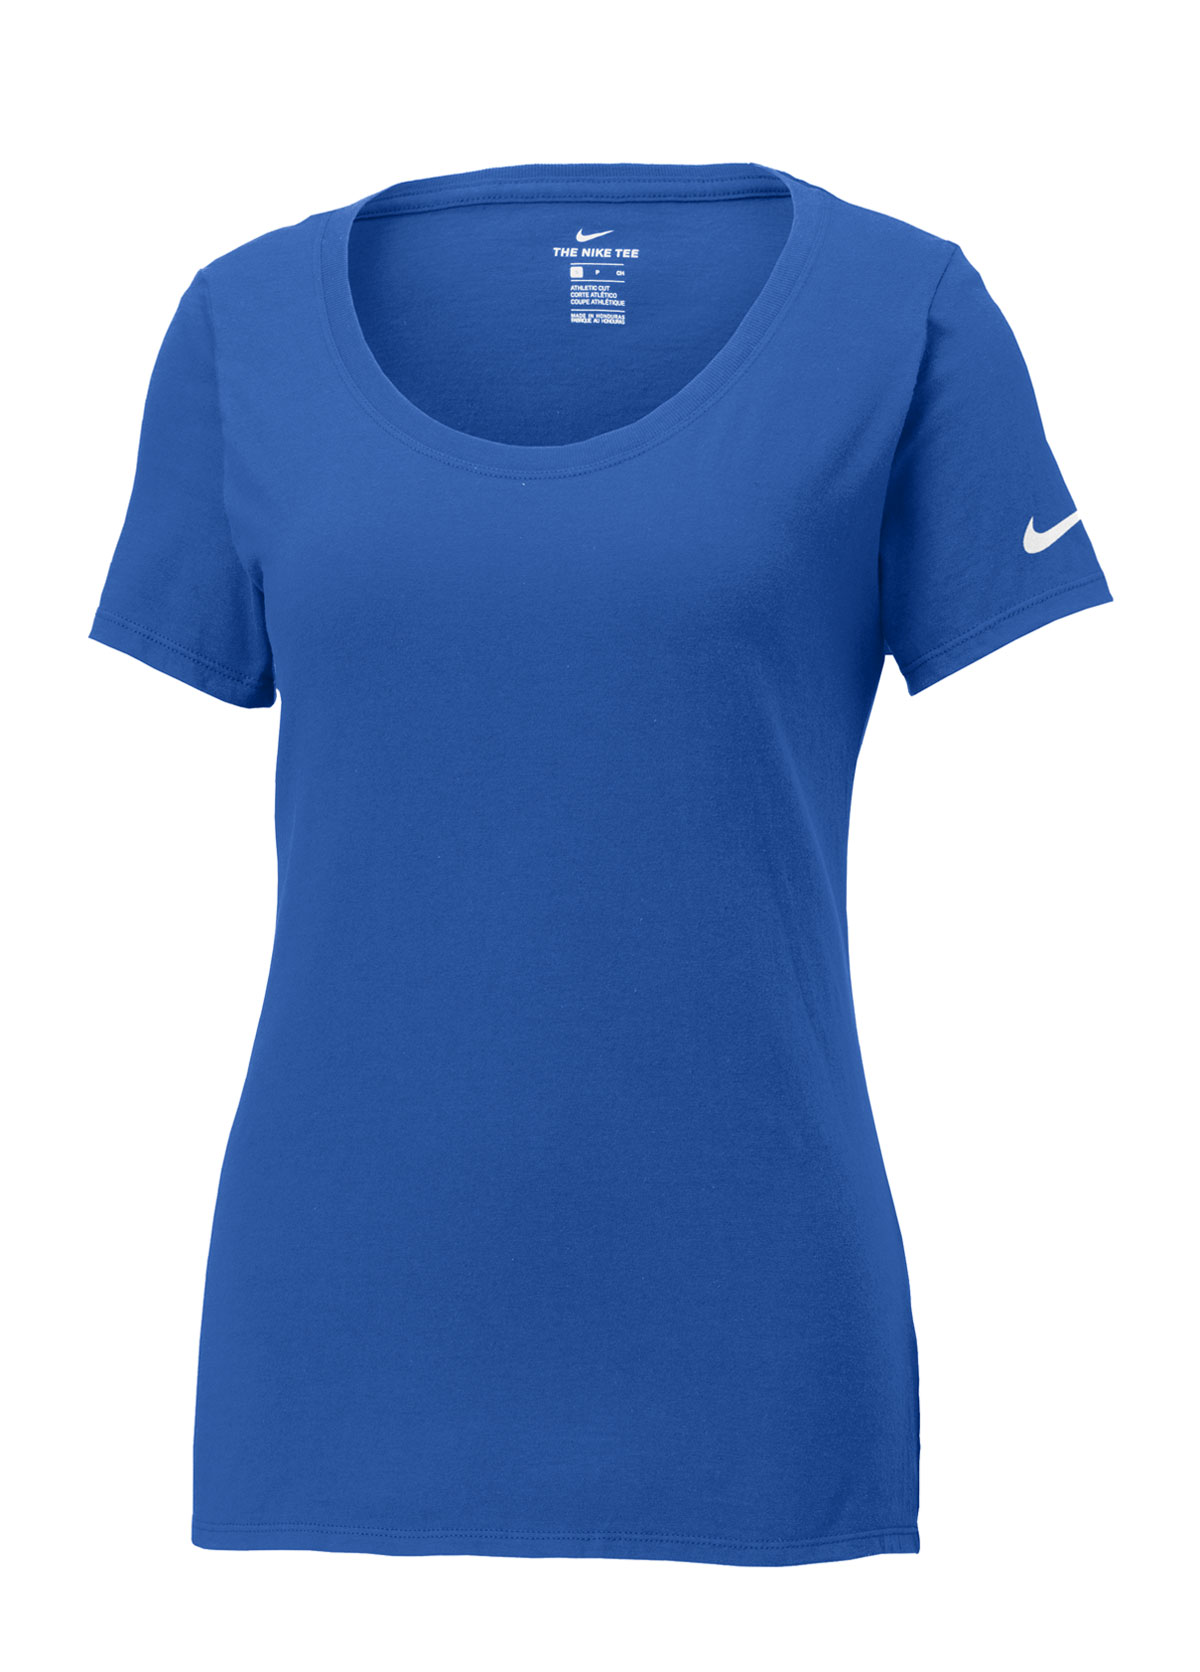 Limited Edition Nike Ladies Core Cotton Scoop Neck Tee